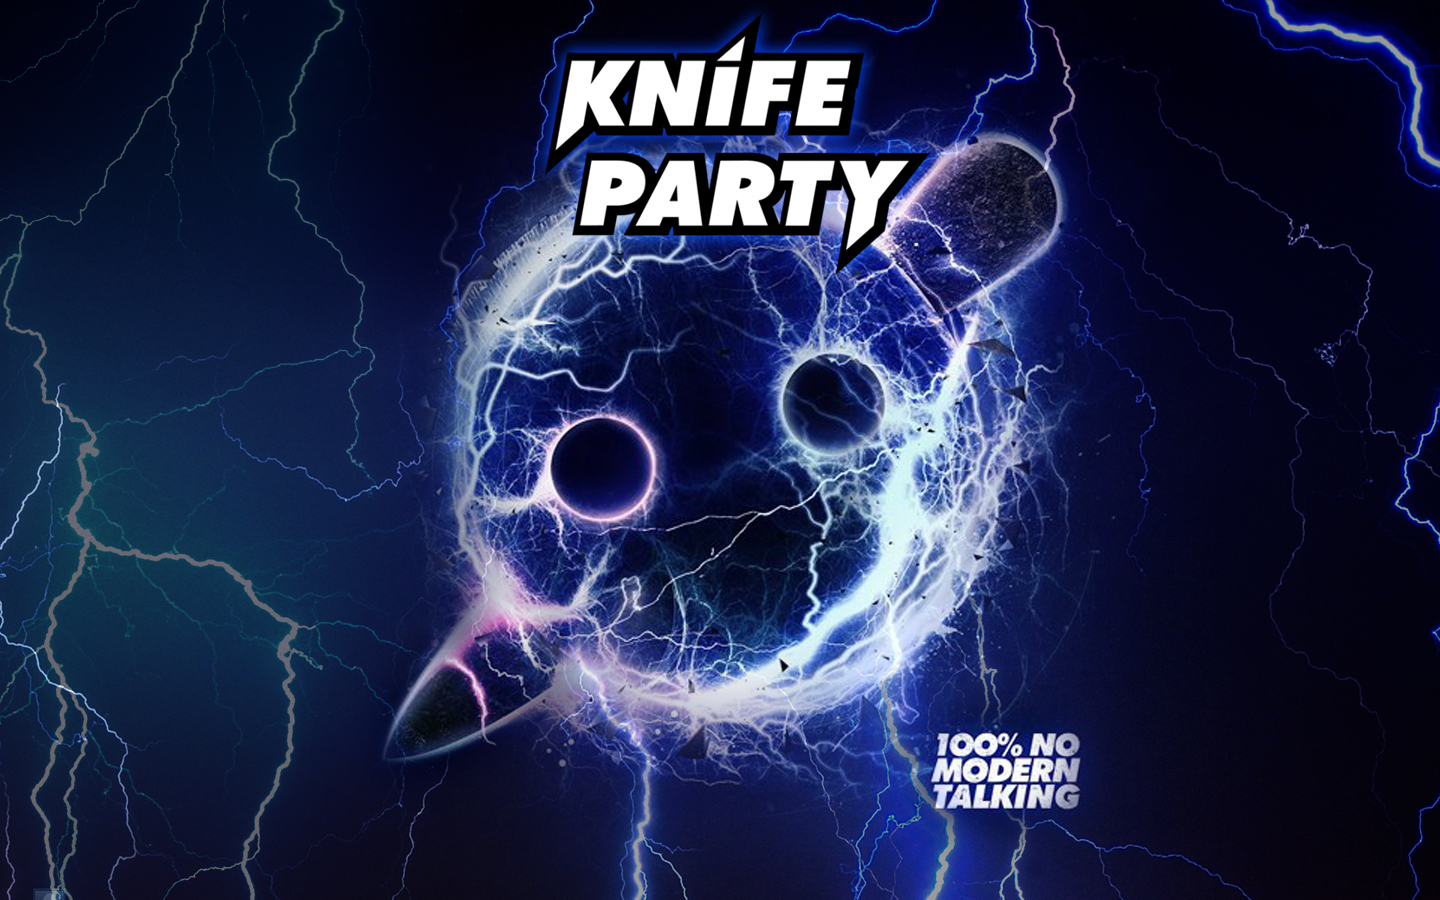 Knife Party Wallpaper by Andenix on DeviantArt